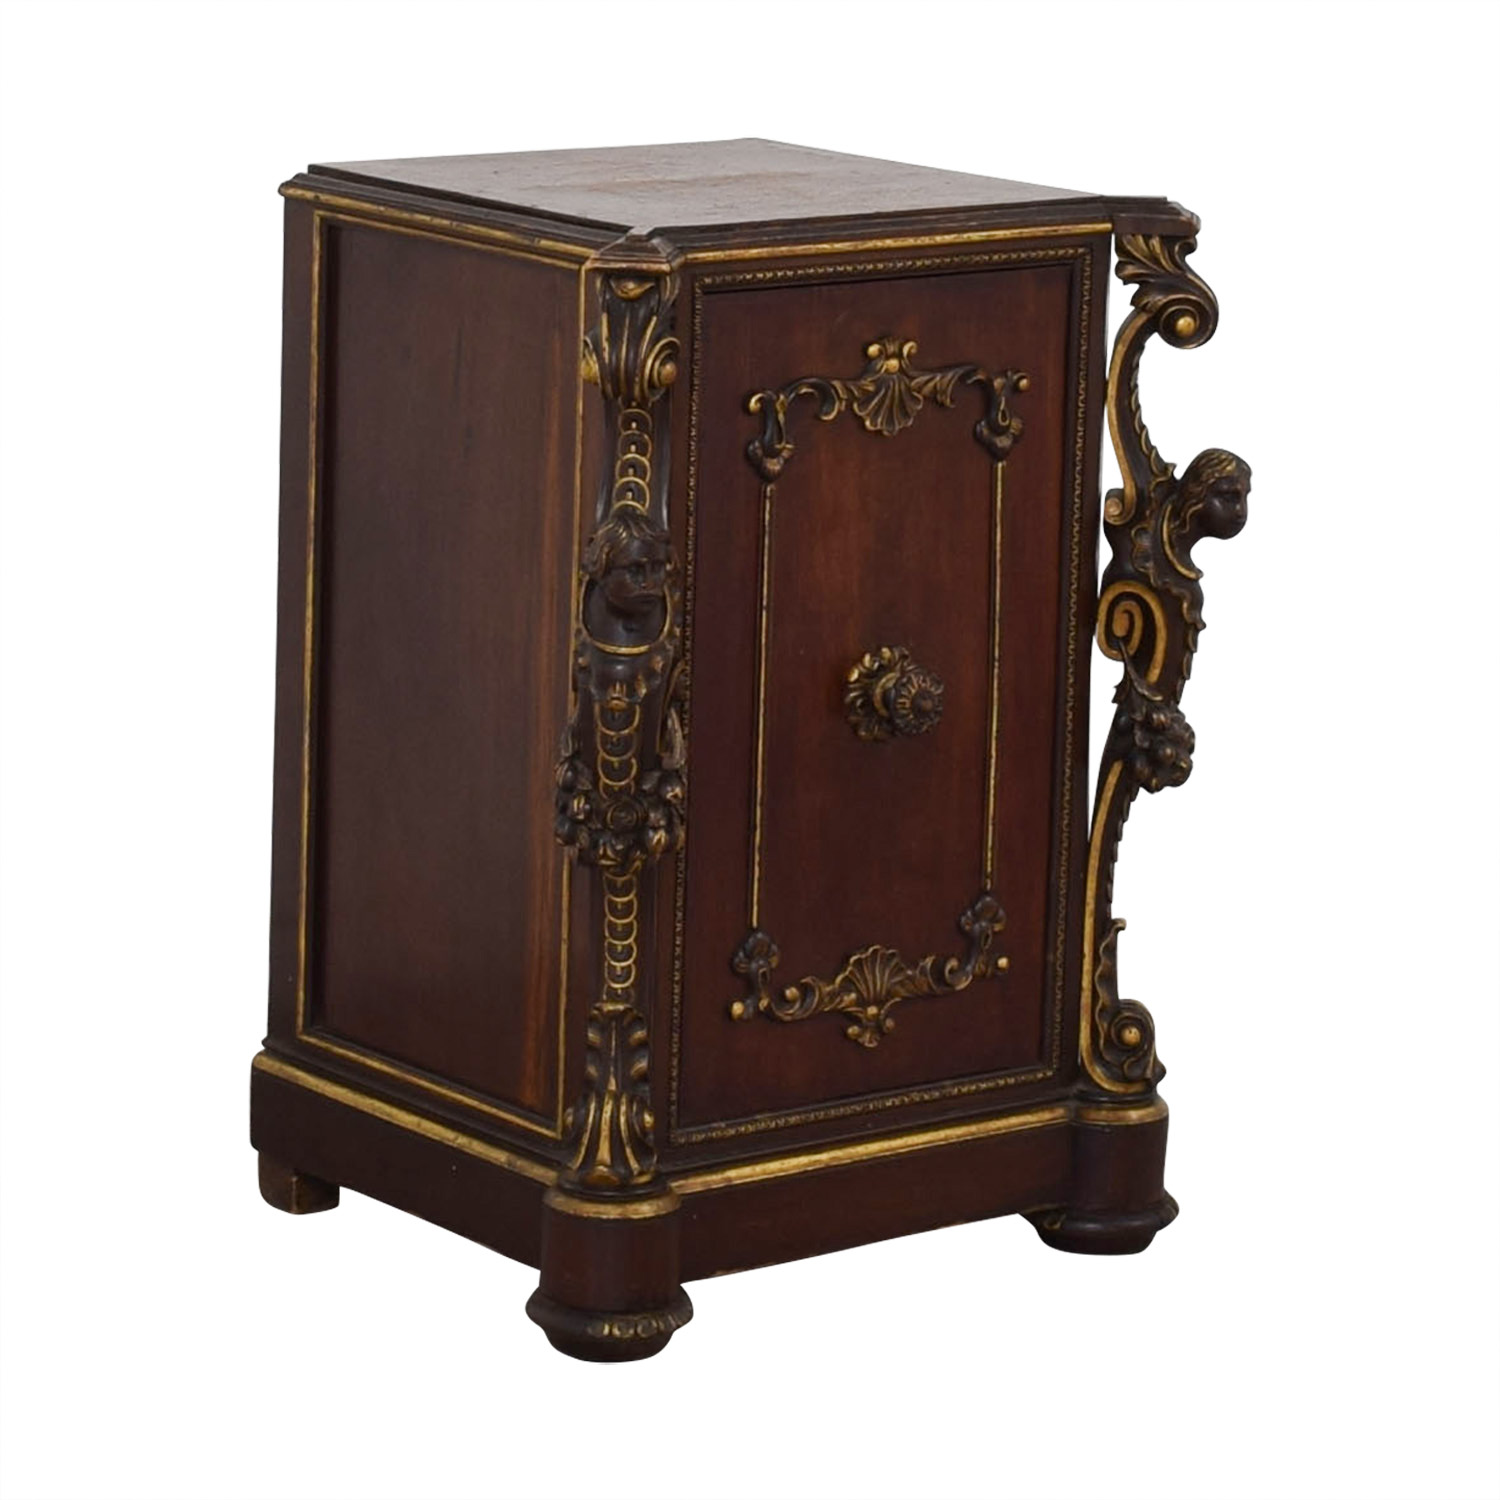 ABC Carpet & Home ABC Carpet & Home Antique Cabinet with Gothic Heads coupon